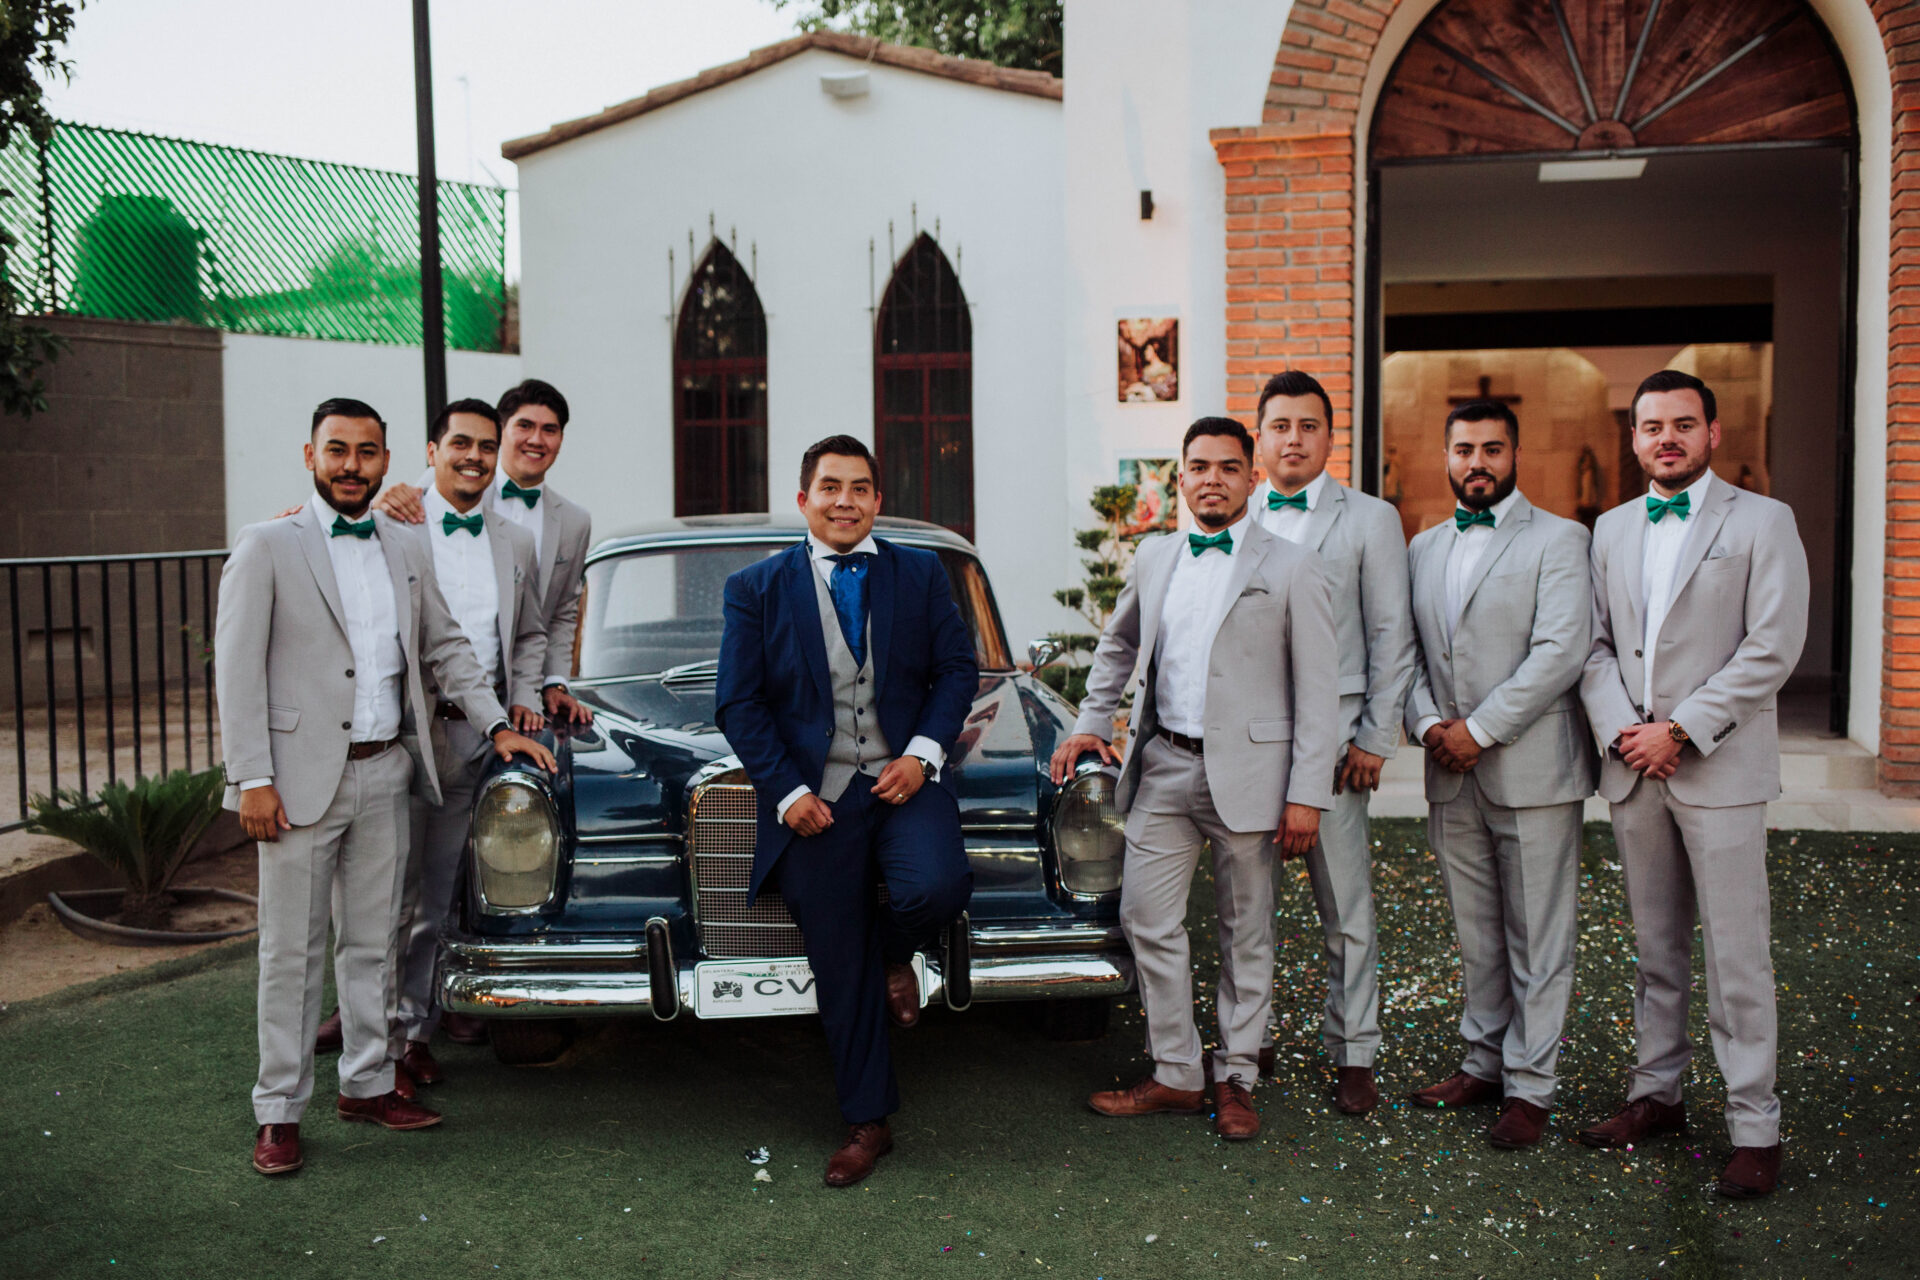 javier_noriega_fotografo_bodas_torreon_coahuila_zacatecas_wedding_photographer43a